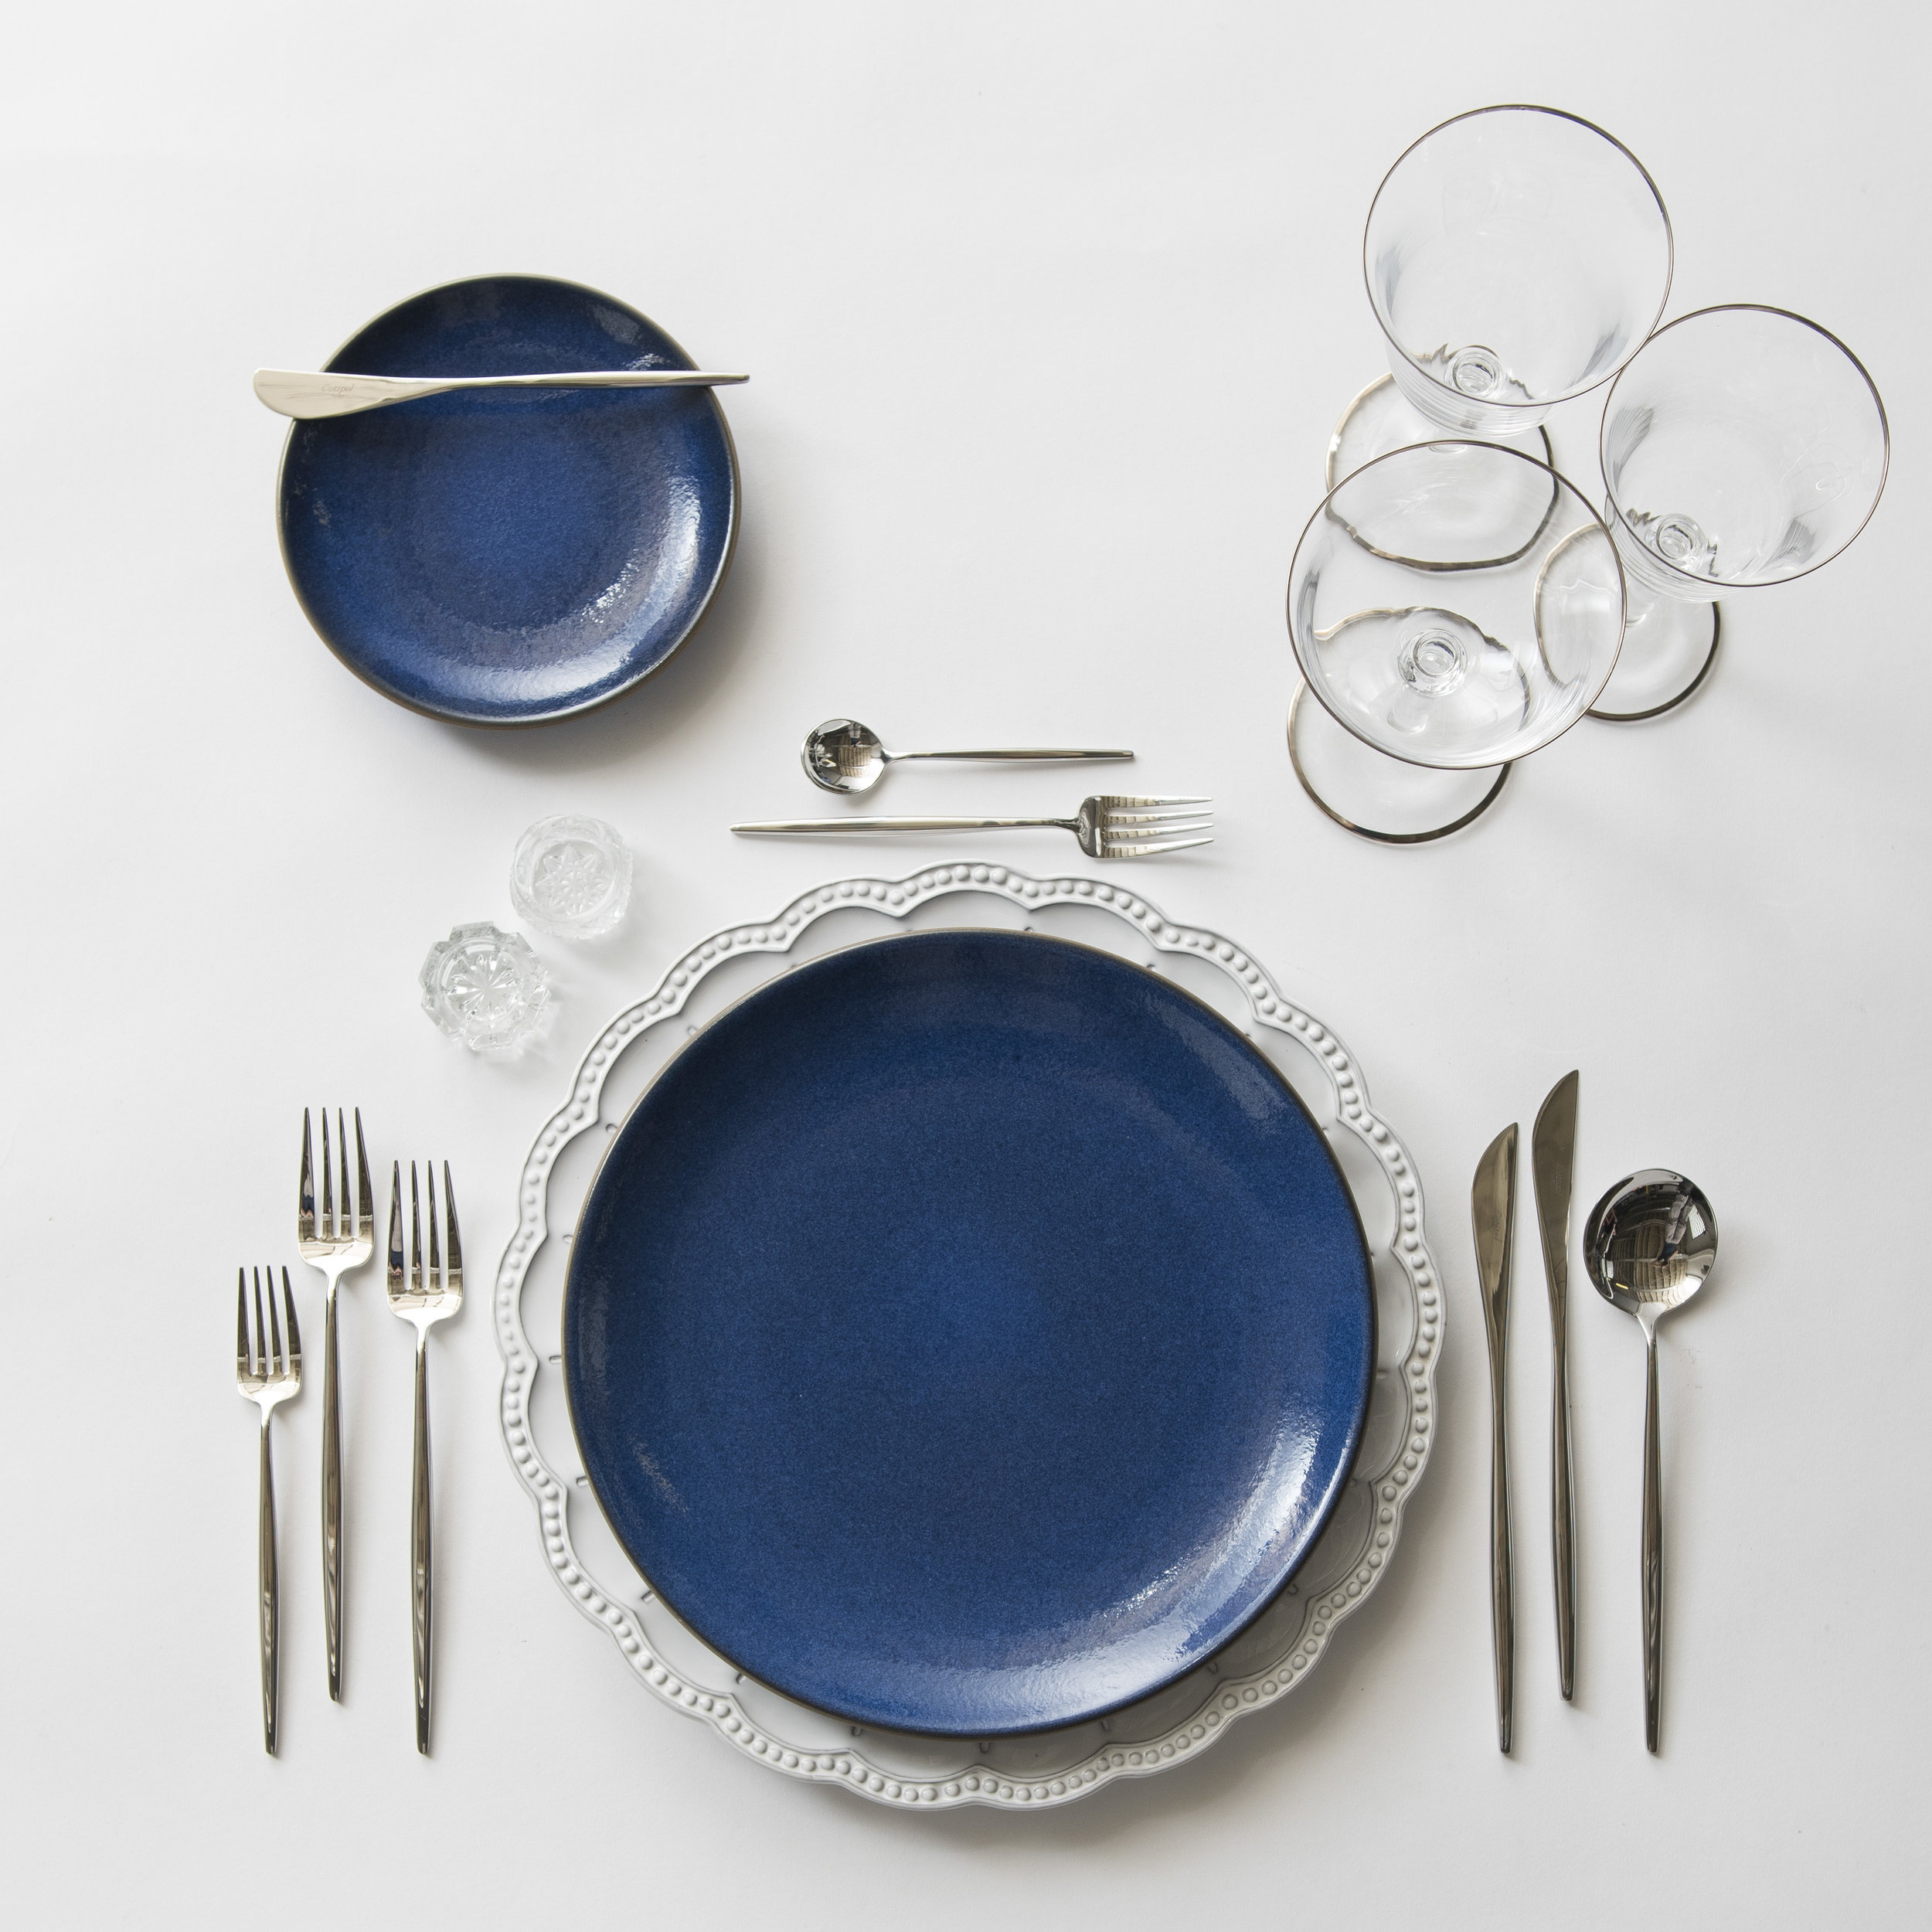 RENT: Signature Collection Chargers + Heath Ceramics in Moonstone + Moon Flatware in Polished Steel + Chloe Platinum Rimmed Stemware + Antique Crystal Salt Cellars  SHOP:Moon Flatware in Polished Steel + Chloe Platinum Rimmed Stemware